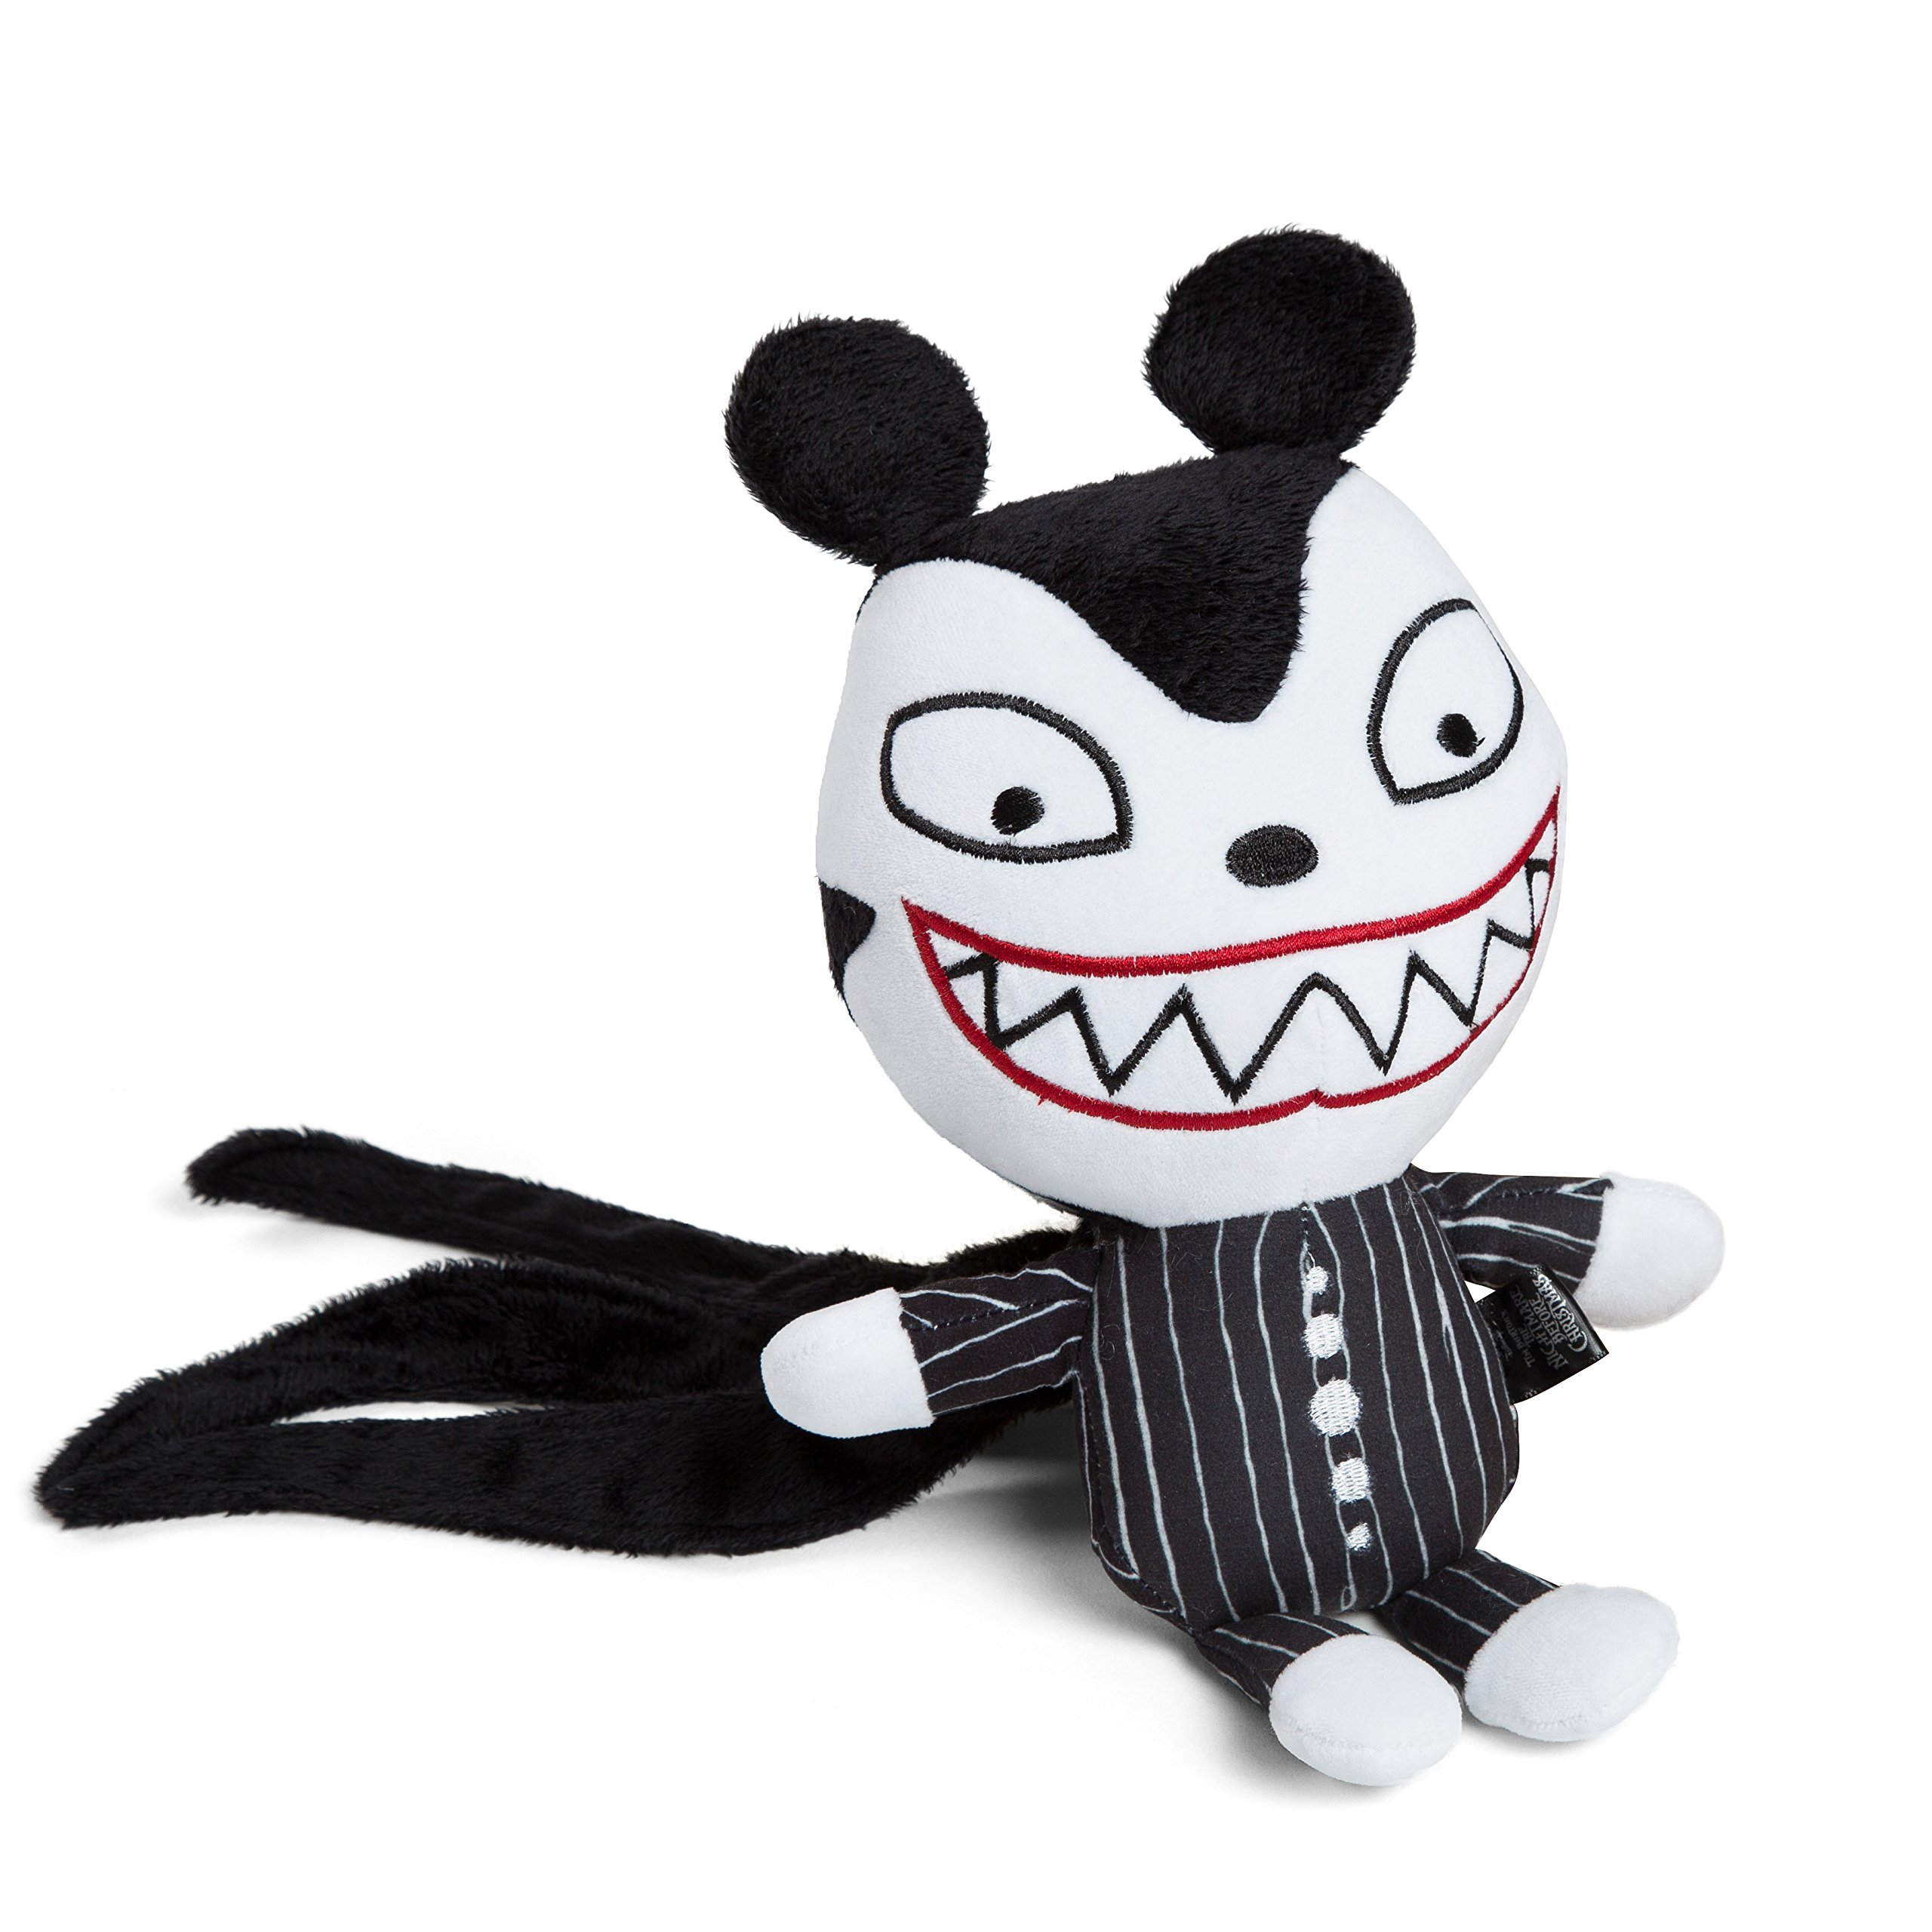 Disney Nightmare Before Christmas Scary Teddy Plush Dog toy / Cat Toy, Chew Toy, Built-in Squeaker, Collector's Edition